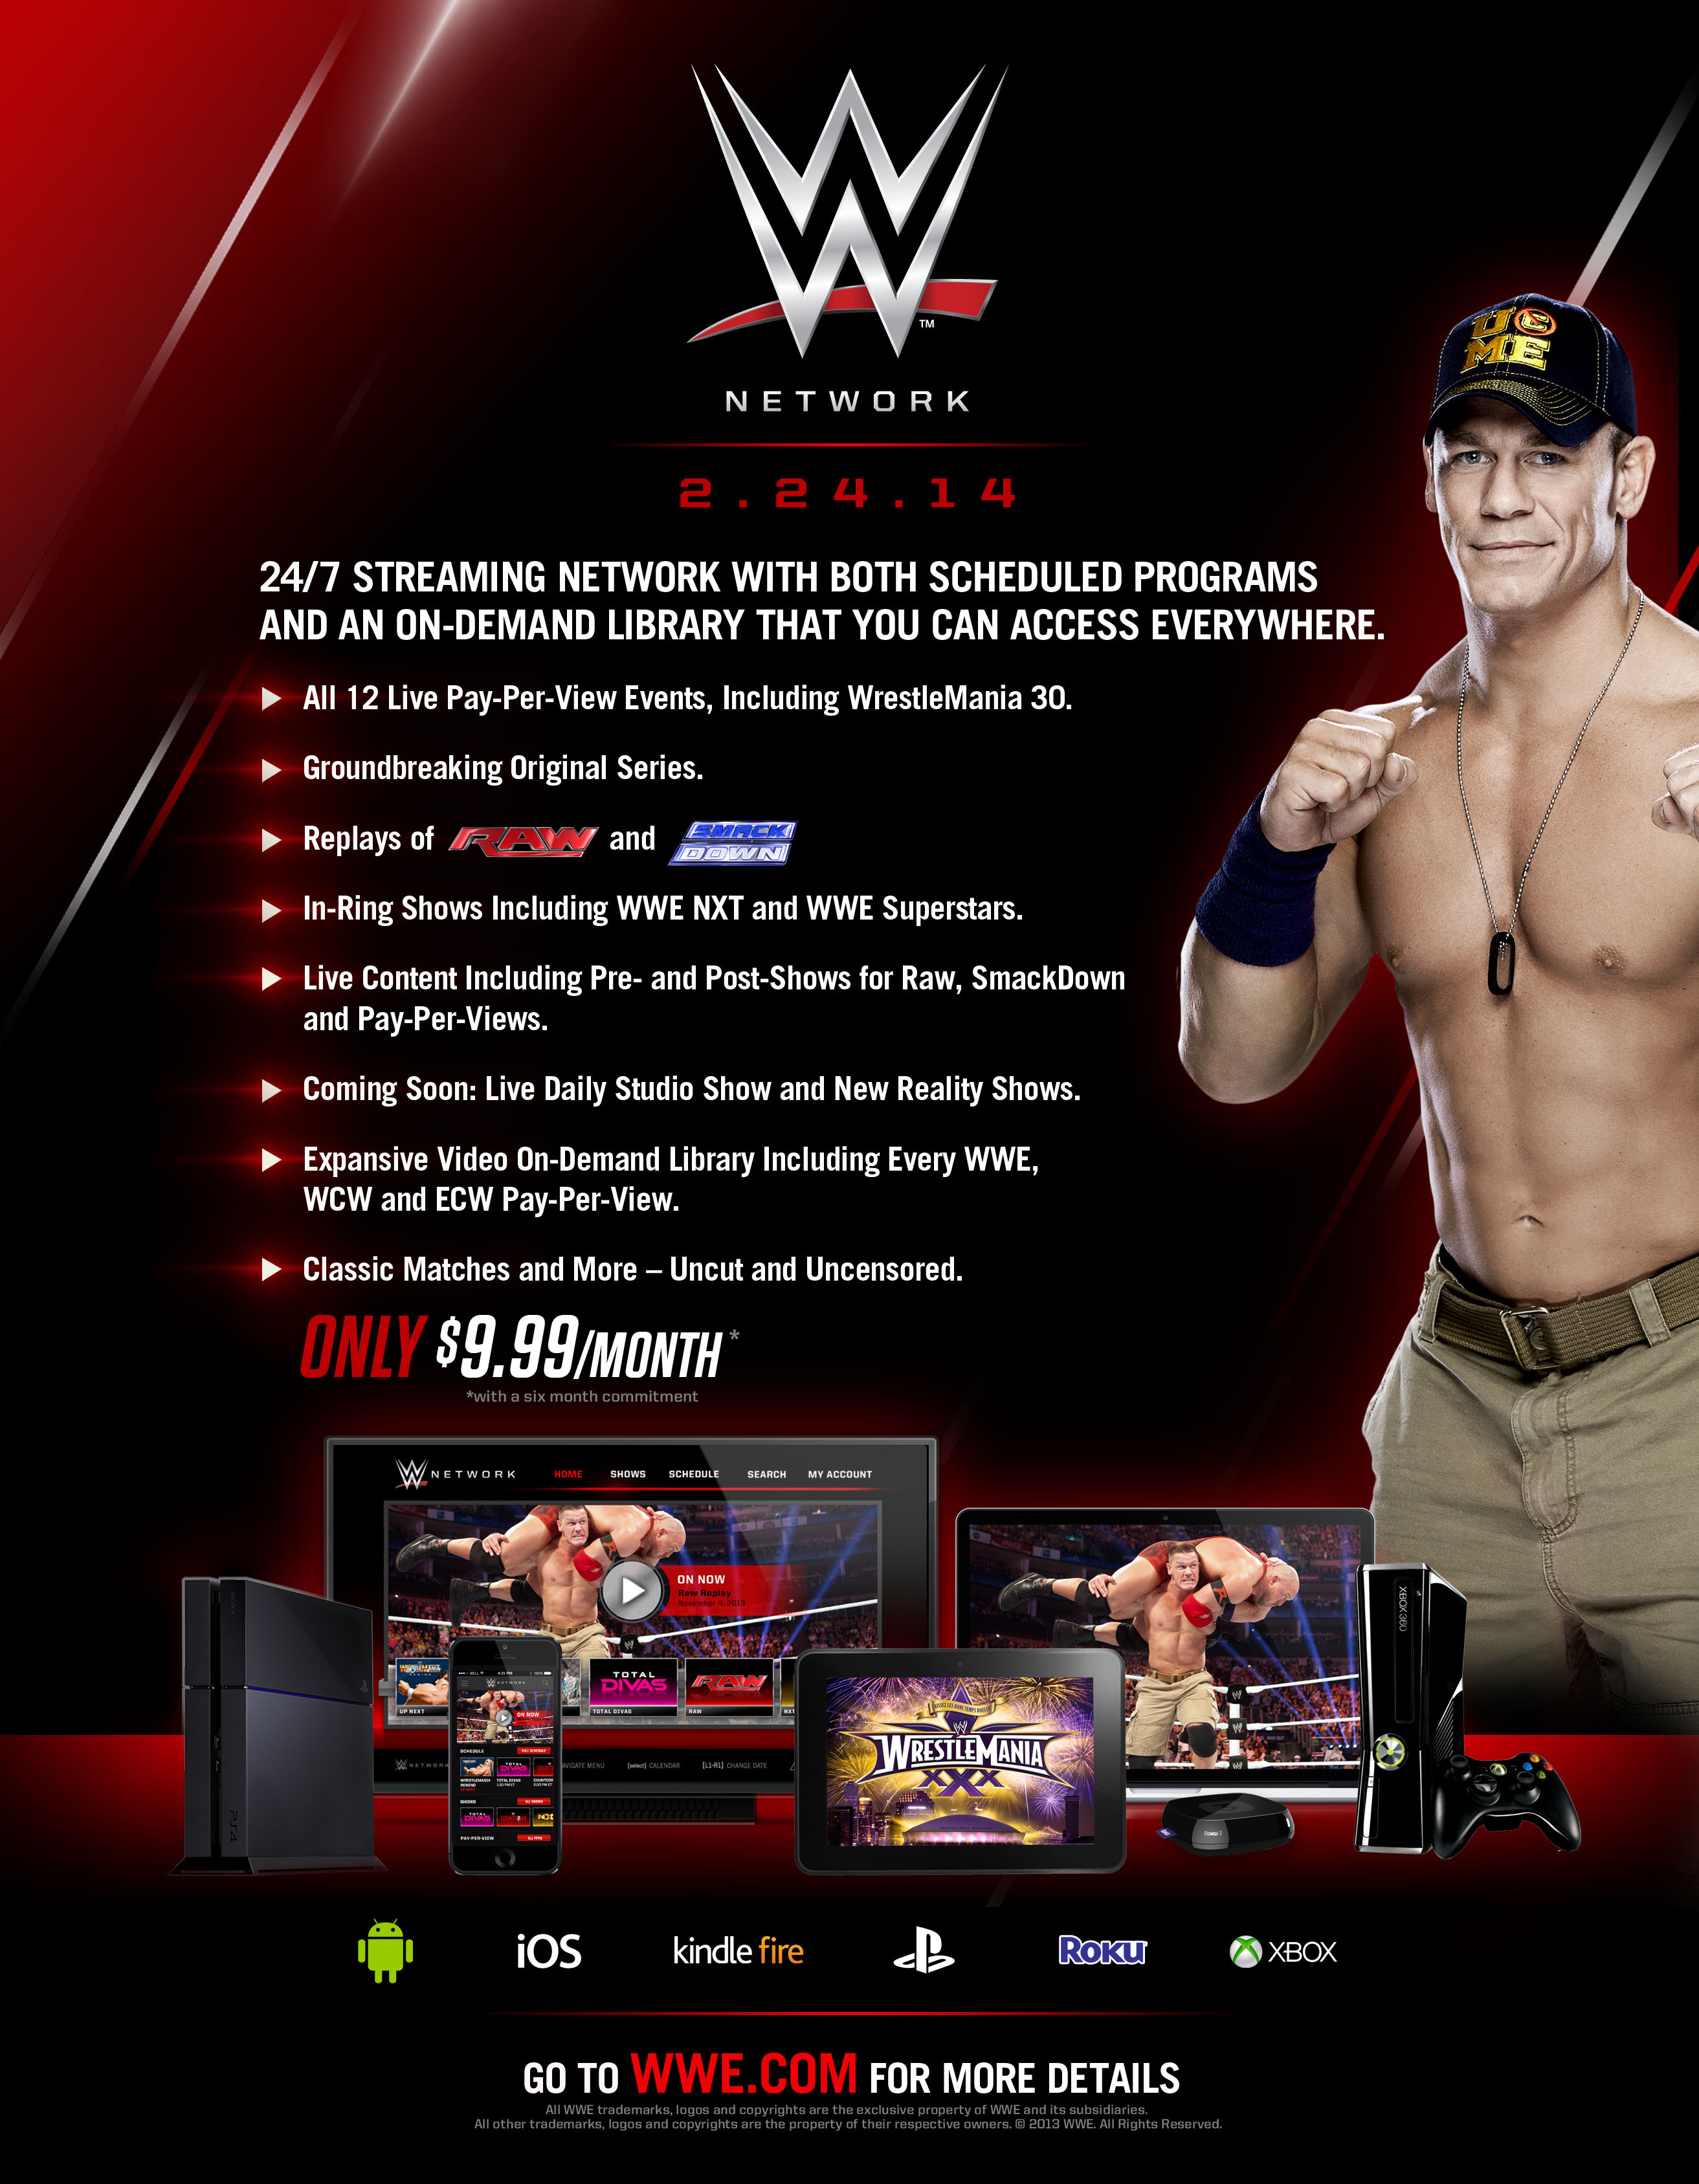 Overview of the features of the new WWE Network. (Photo: Business Wire)